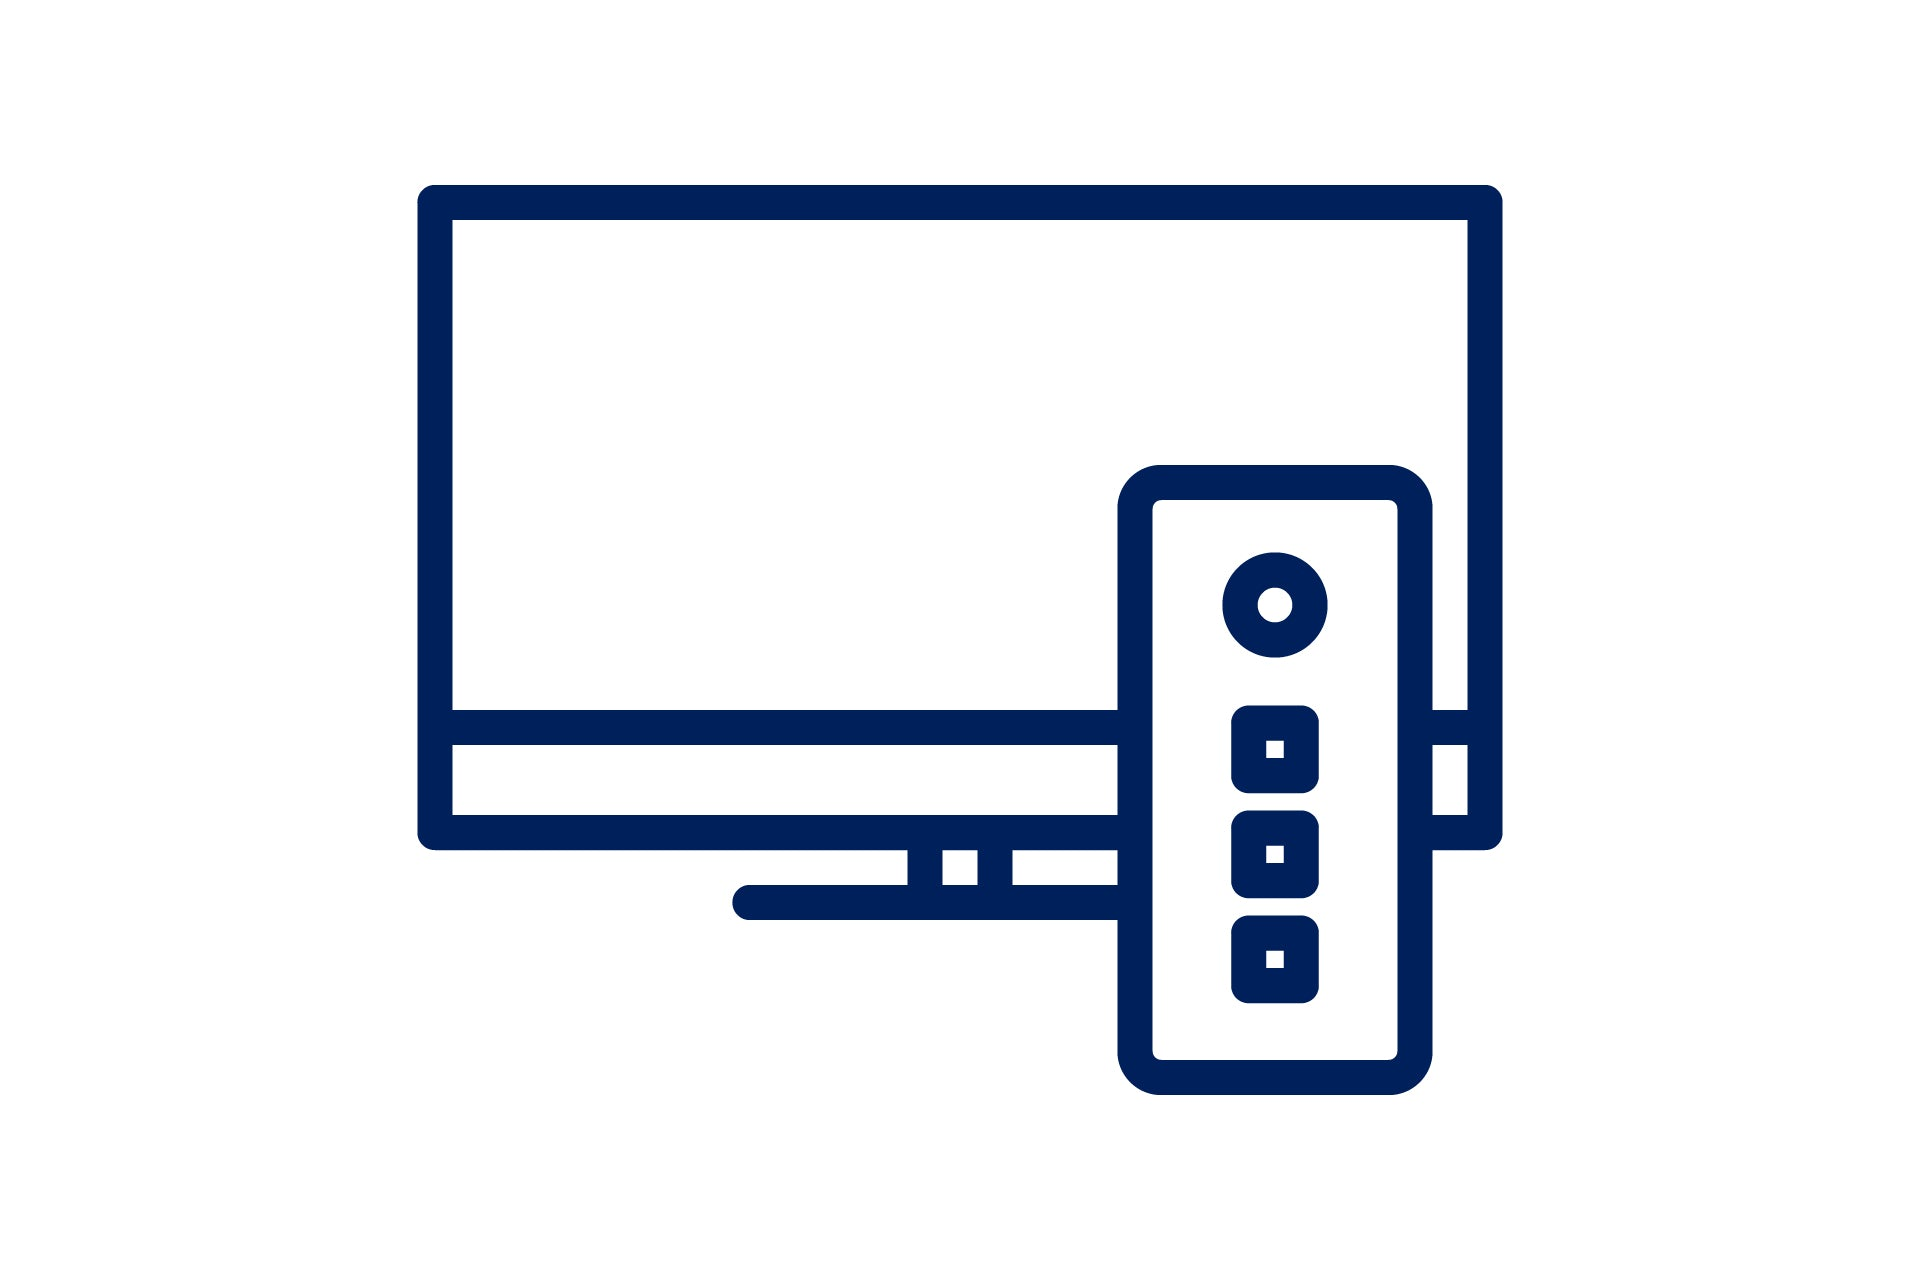 an icon of a tv screen